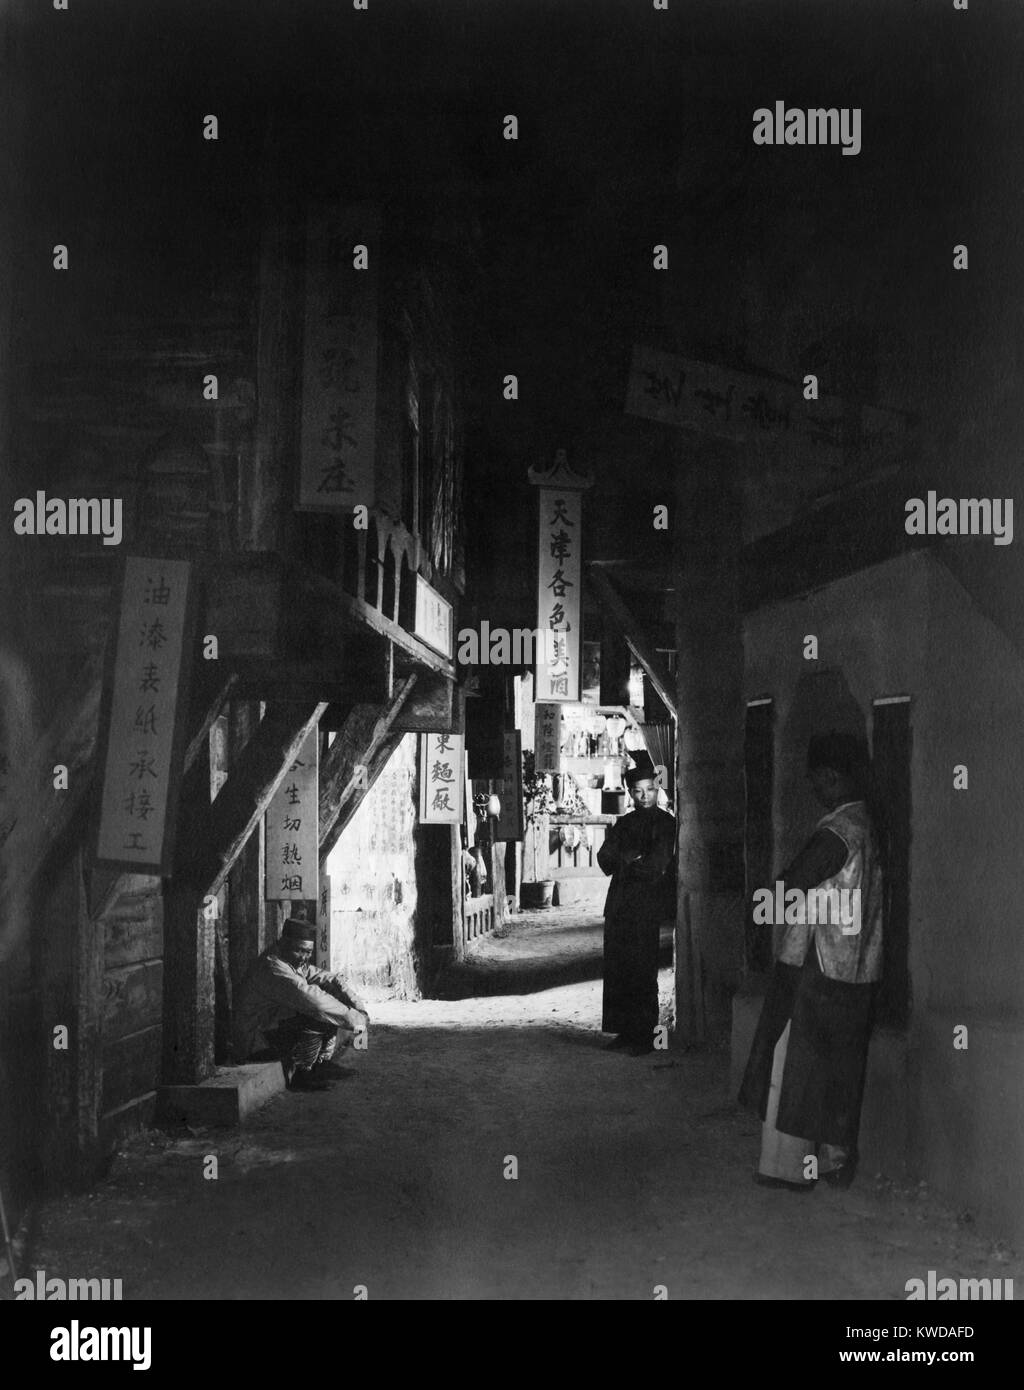 'Neighbors of the Alley', by Paul Grenbeaux. Three Chinese men in a dark alley of Chinatown, in Los Angeles, - Stock Image